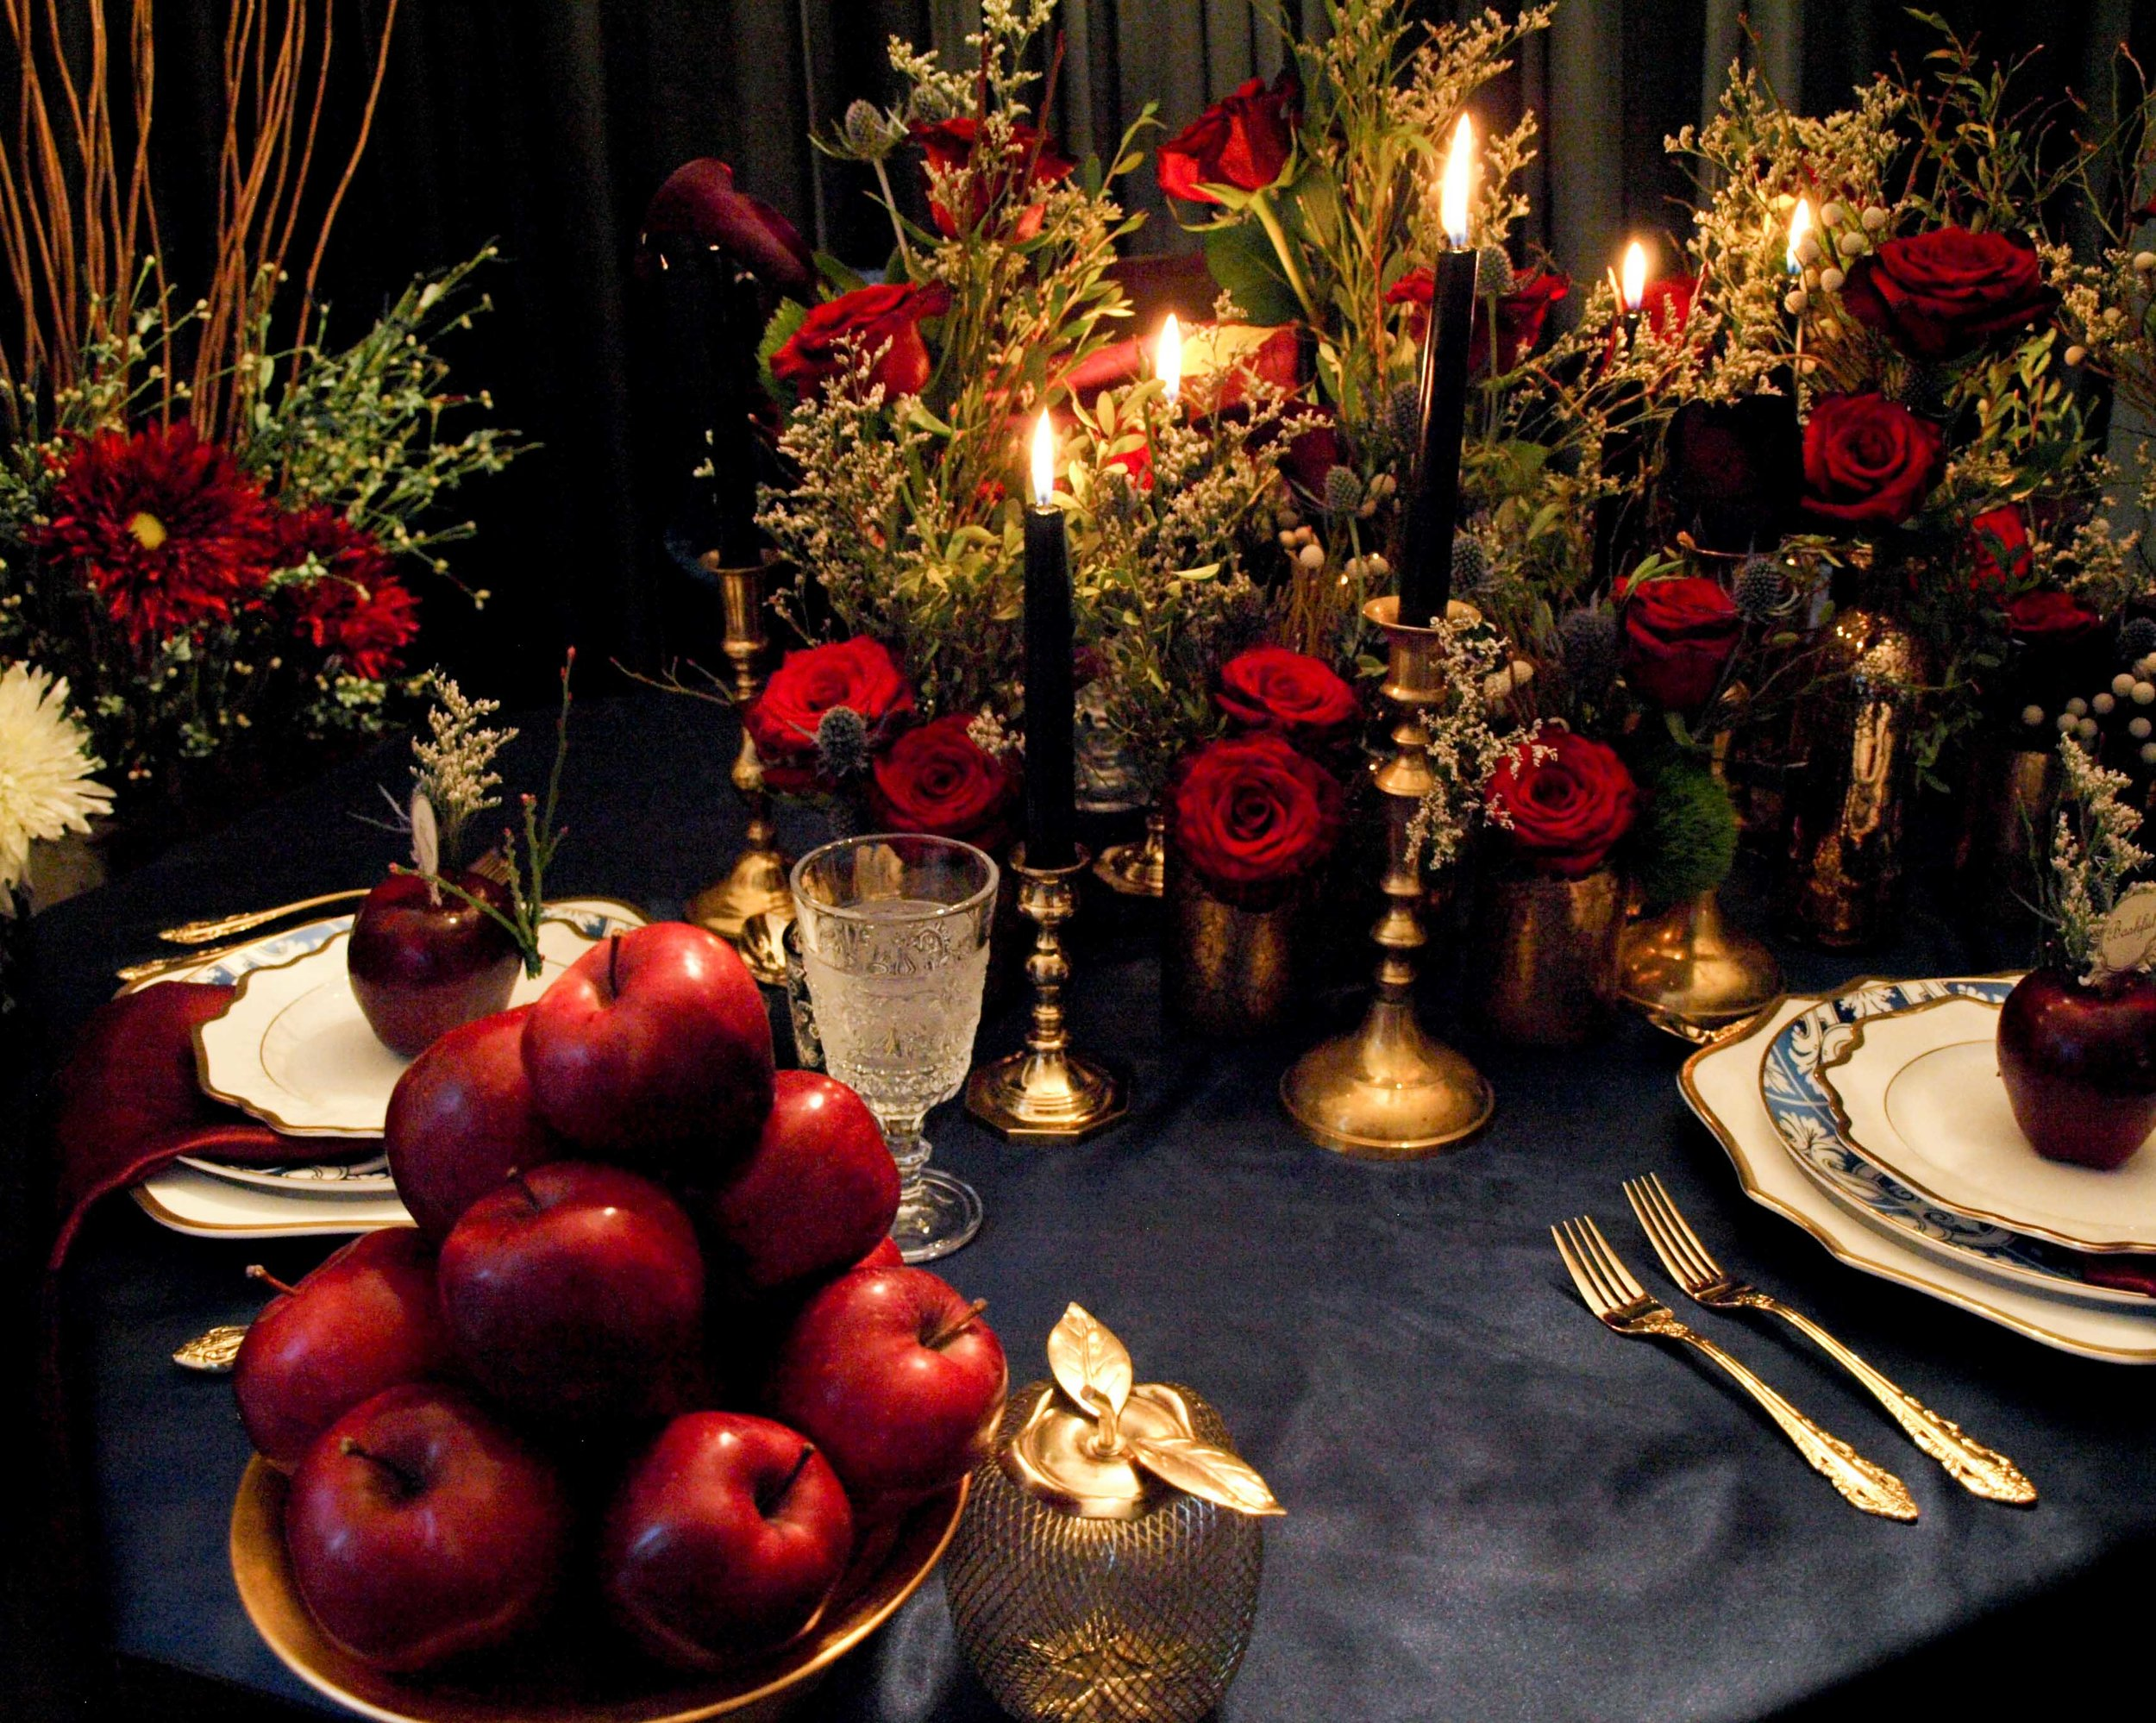 Snow White and the Seven Dwarves Decor and Floral Inspiration - Enchanted Dark Forest Tablescape - Historia Wedding and Event Planning